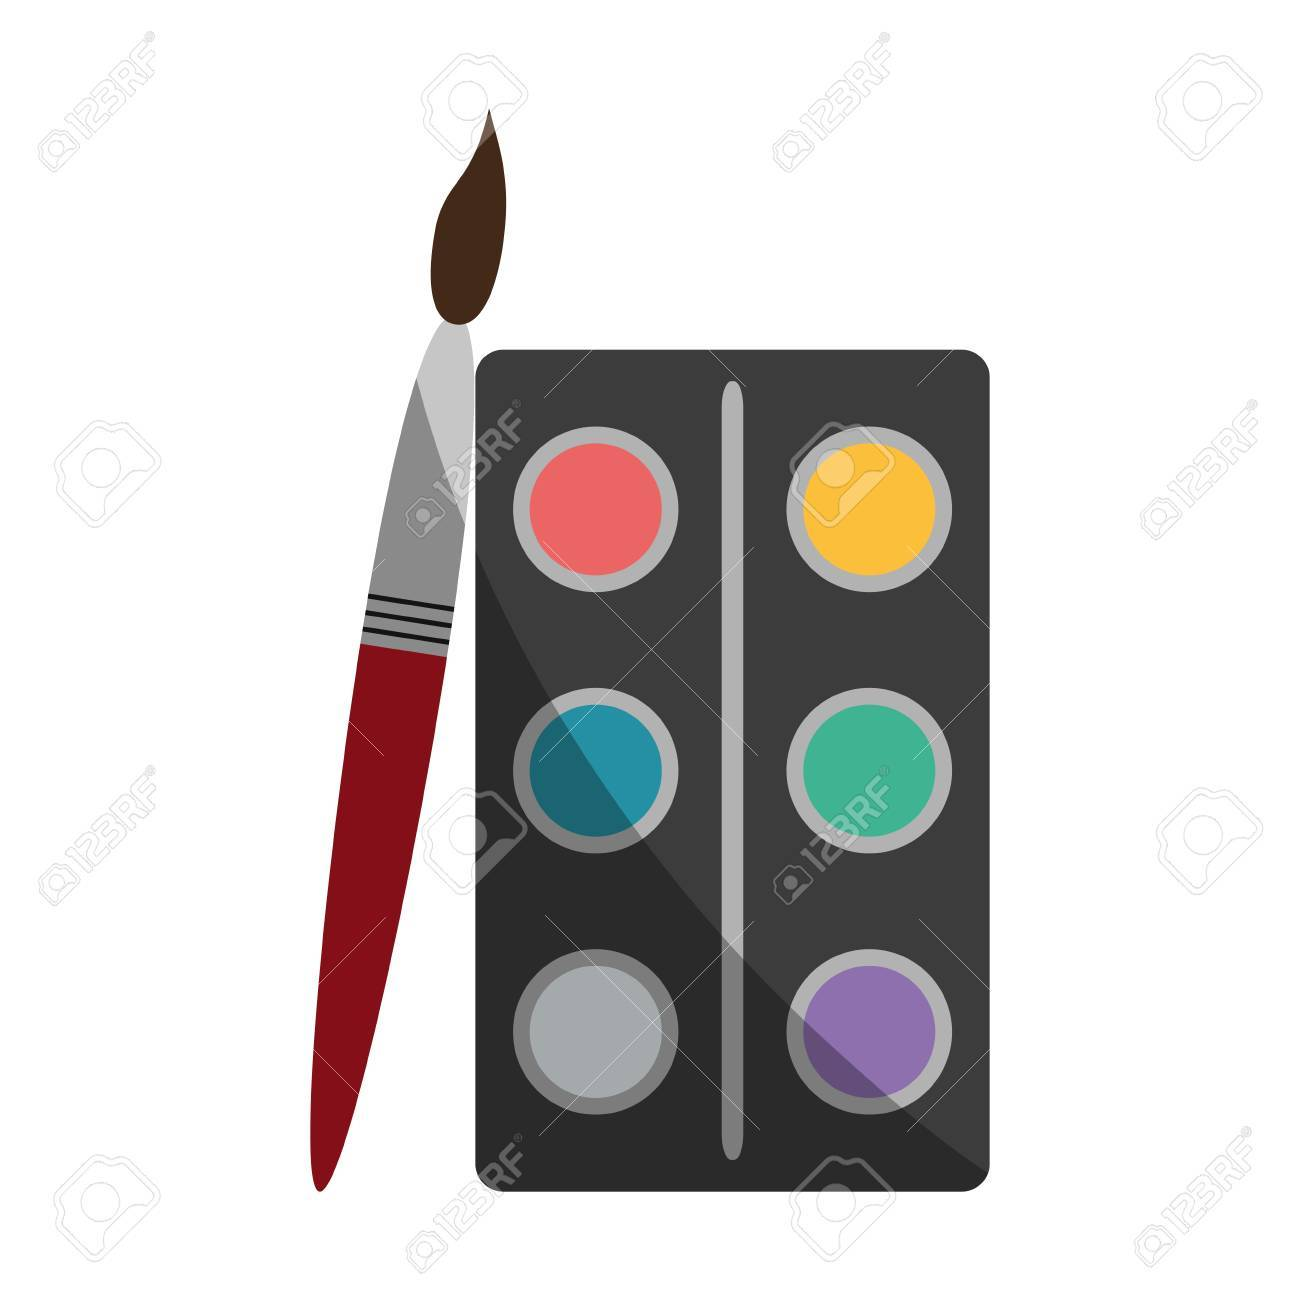 watercolor set with paint brush school supply icon image vector.. royalty  free cliparts, vectors, and stock illustration. image 81272599.  123rf